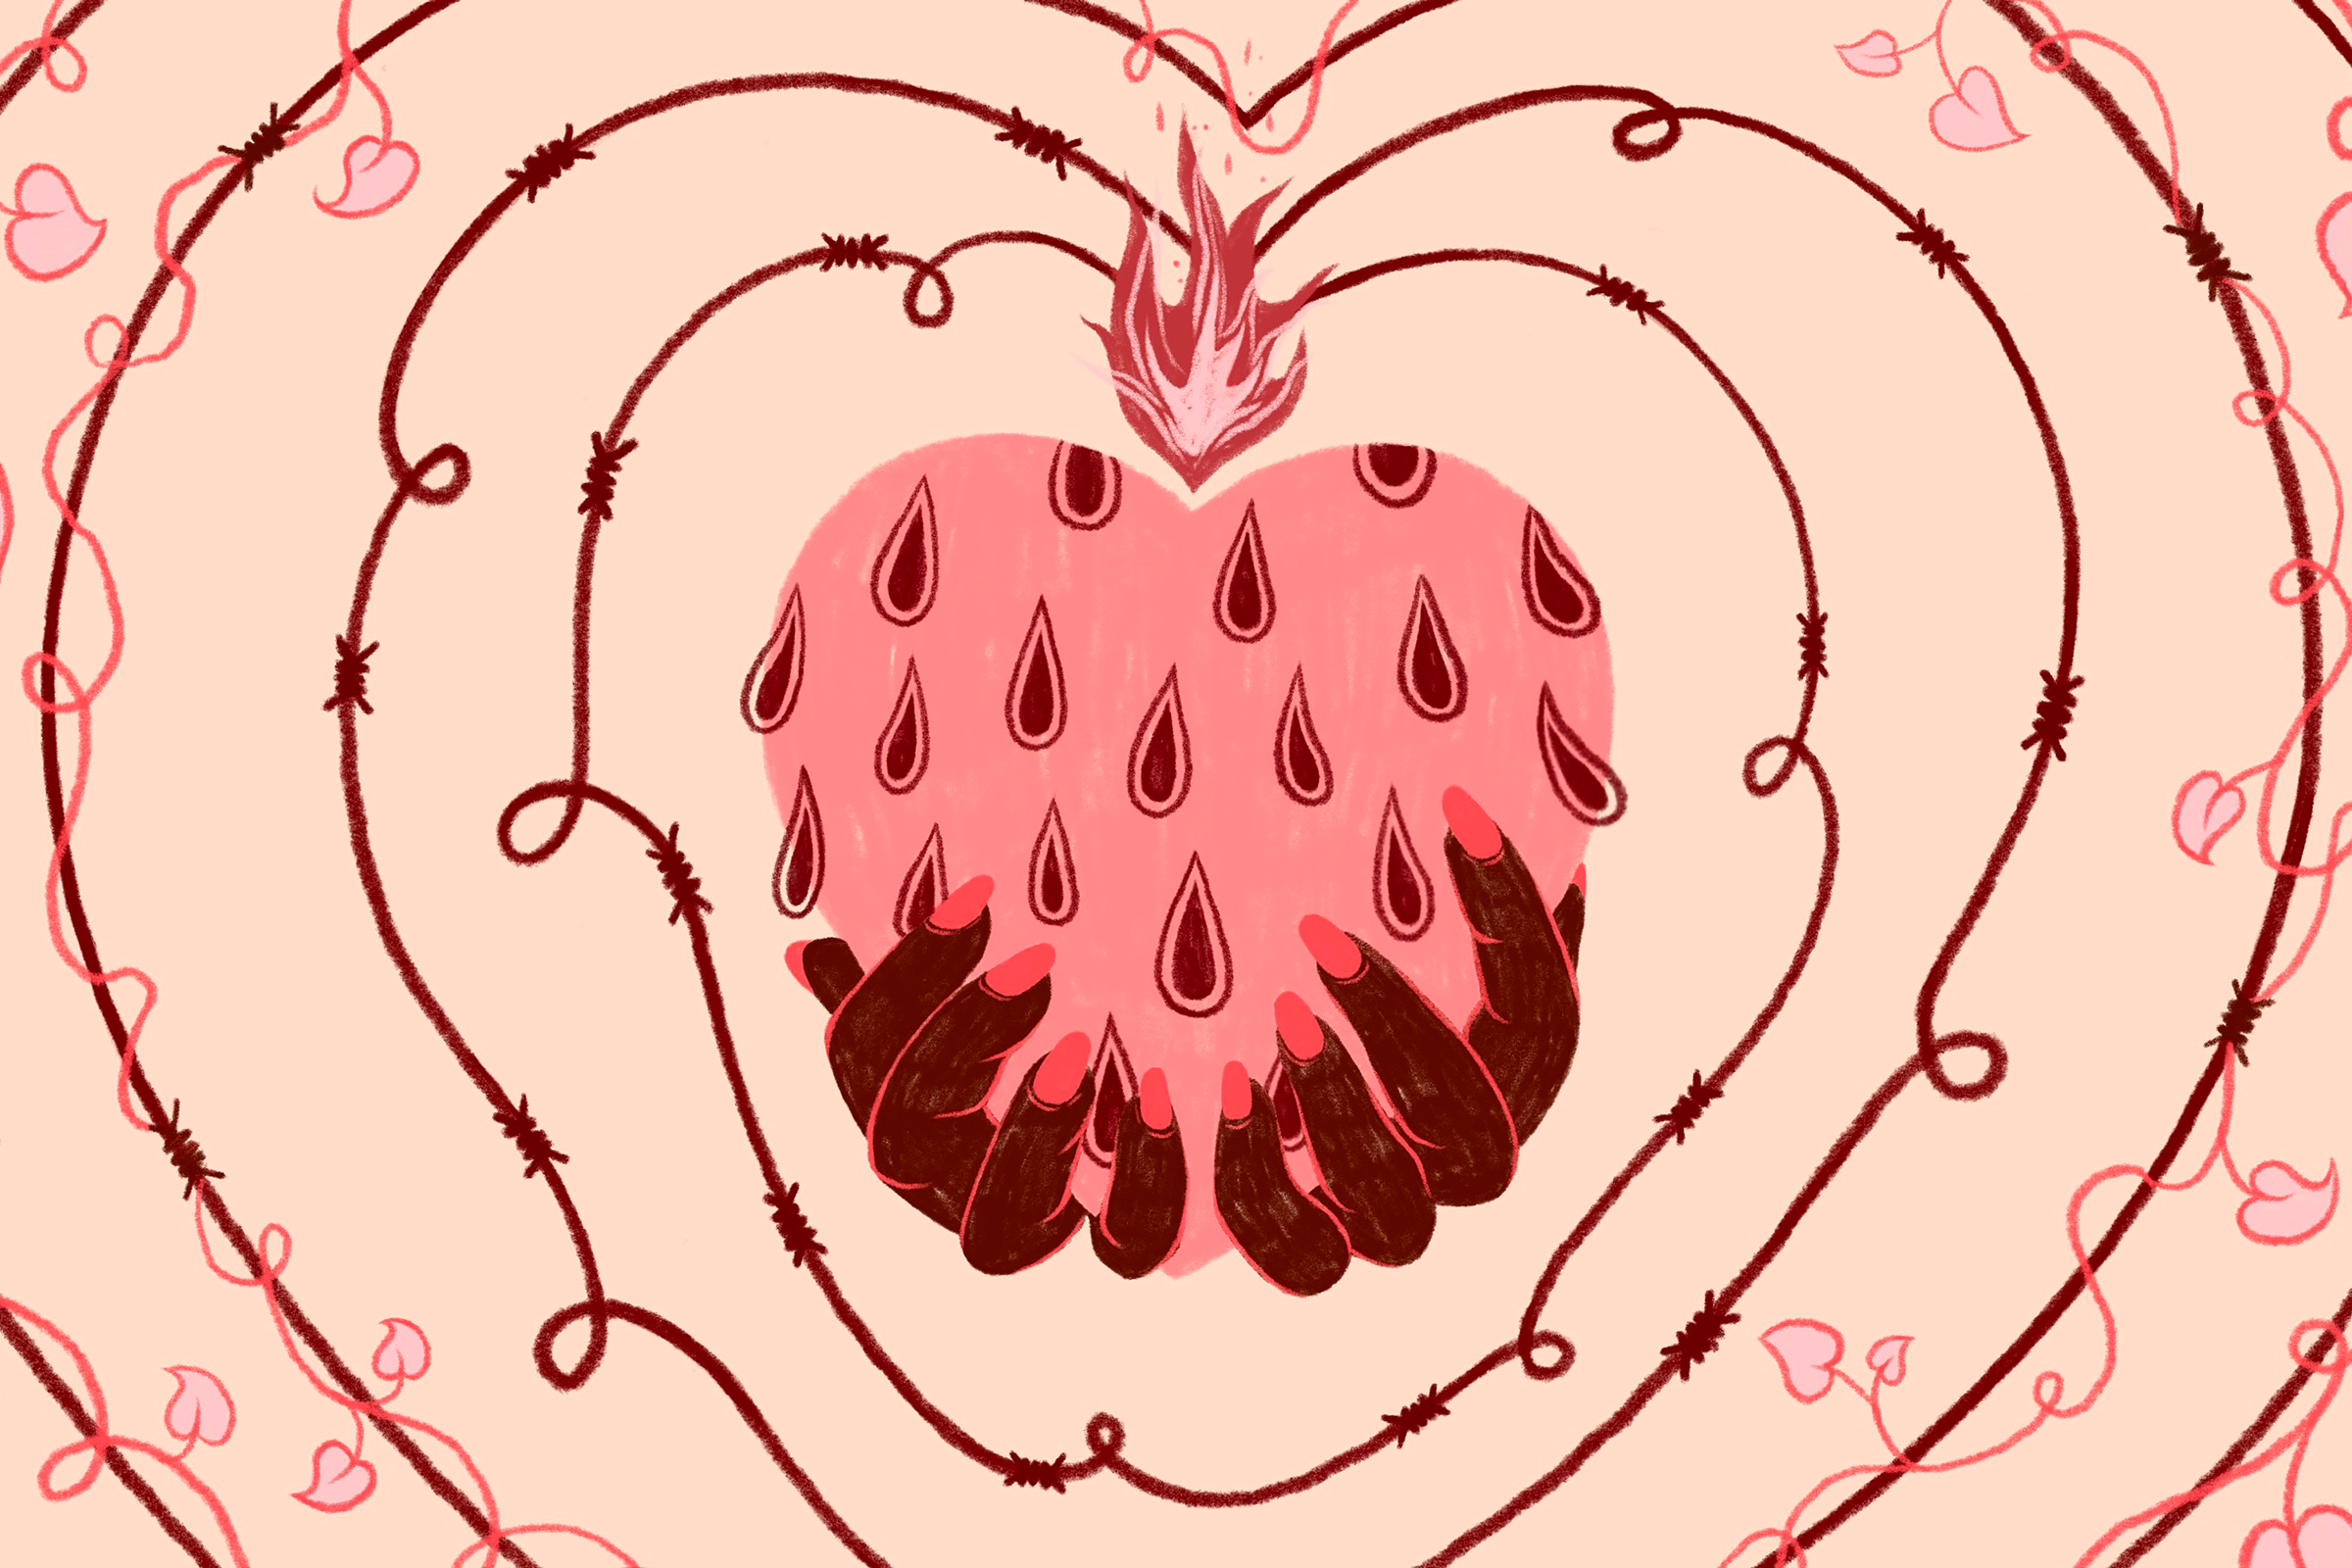 illustration of a Black woman's hands holding a heart that resembles a strawberry